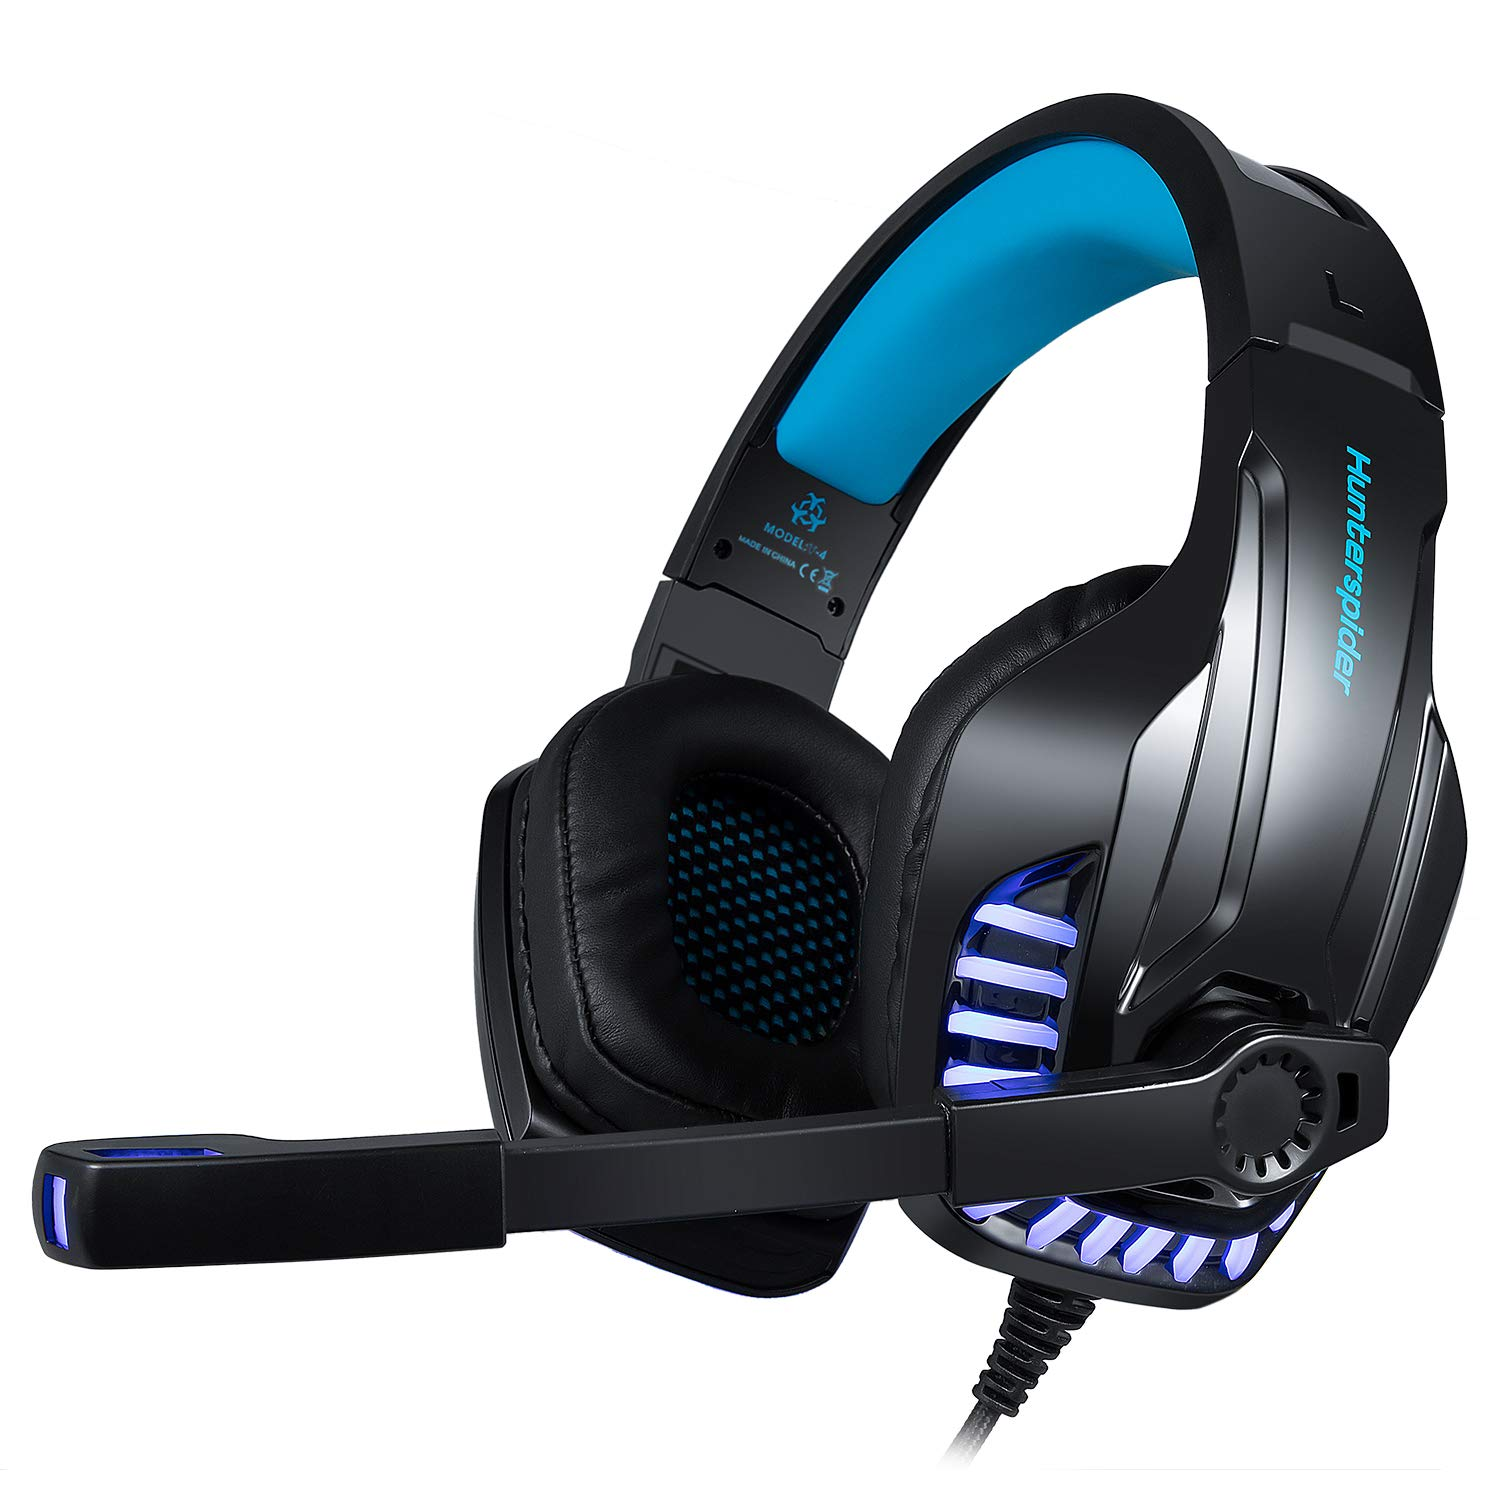 Gaming Wired Headset for FPS and Game Lovers, Noise Cancelling Headphones with Mic, Led Light, Bass Surround, Soft Memory Earmuffs,works with PS4, PC, Xbox One Controller AmiLove